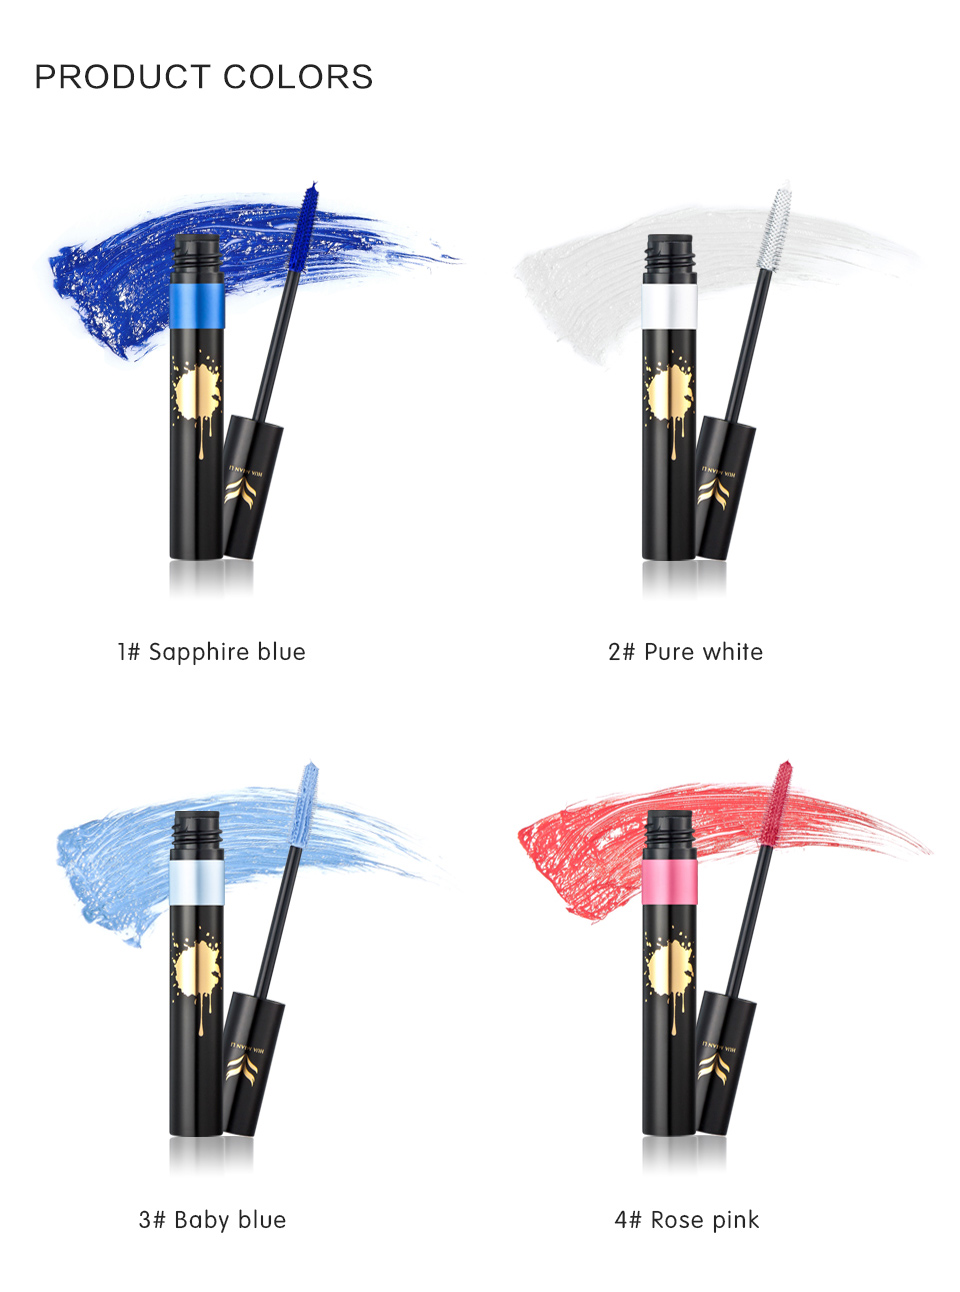 HUAMIANLI Colorful Green Blue Mascara Waterproof Lengthening Curling Eye Lashes Silicone Women Professional Makeup 3D Mascara 15